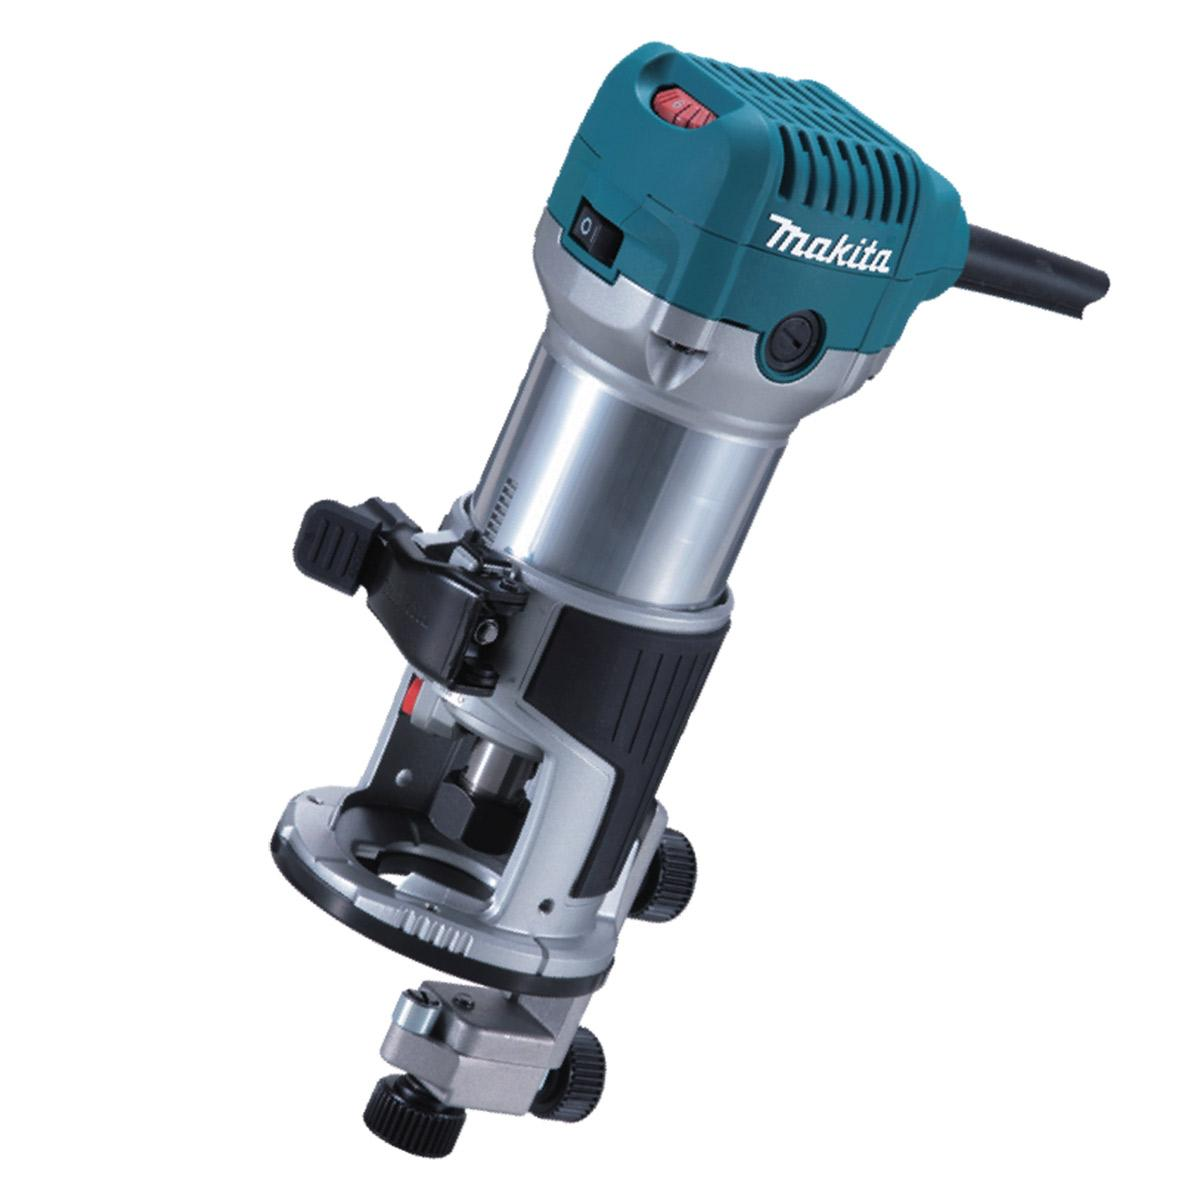 Makita RT0700CX4 Router / Laminate Trimmer with Trimmer Guide 240V lowest price